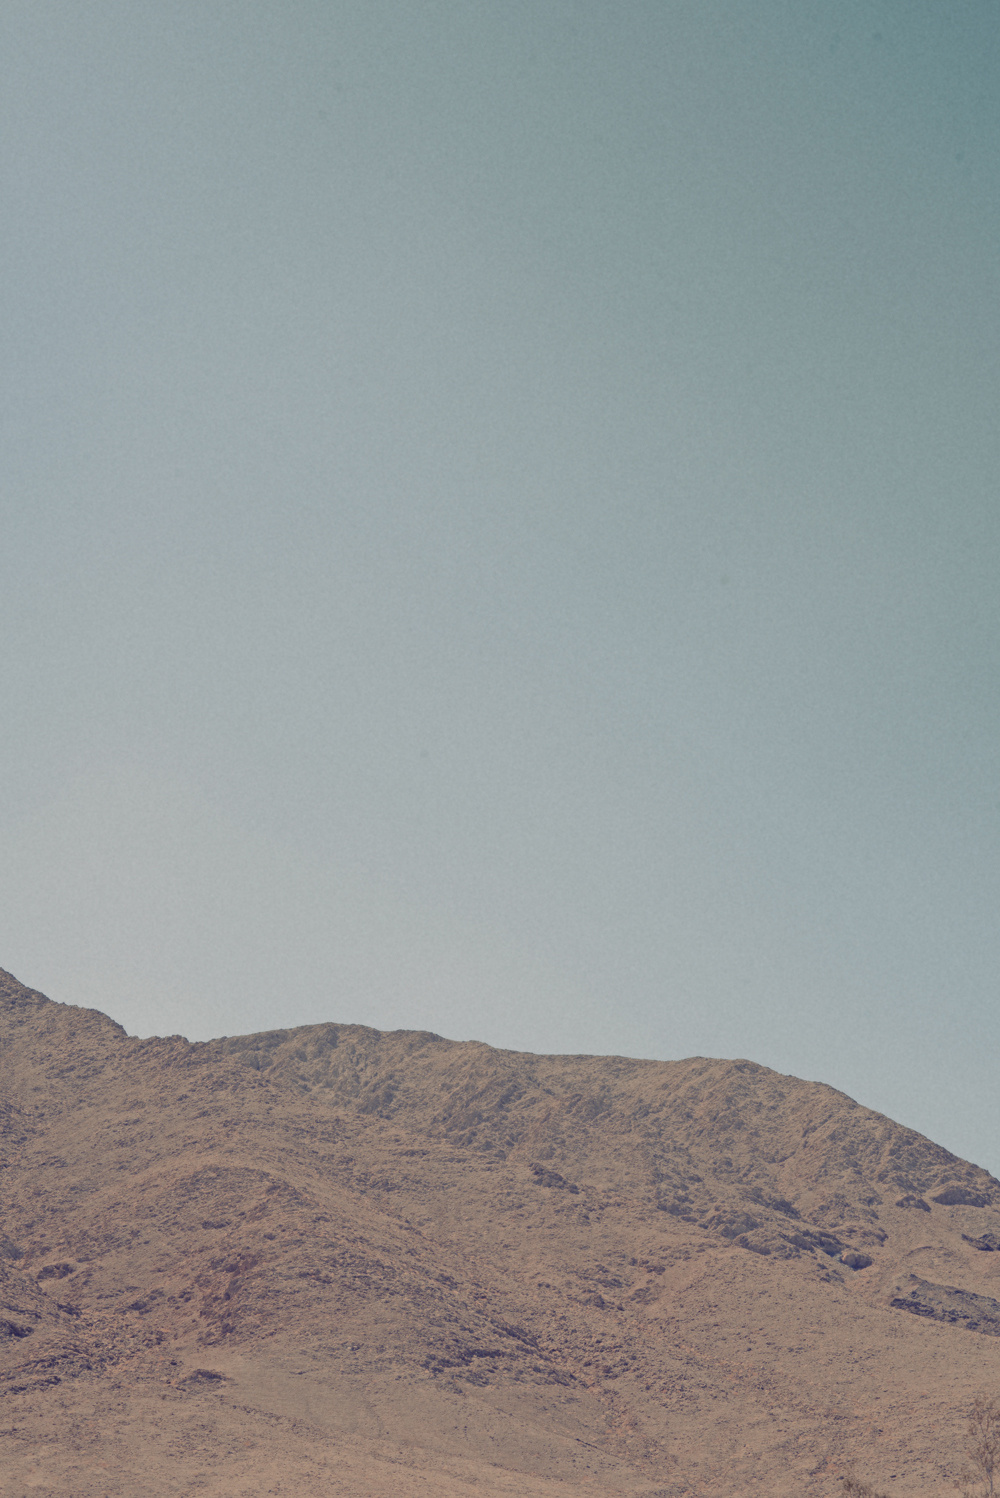 Jordan Sullivan | Death Valley